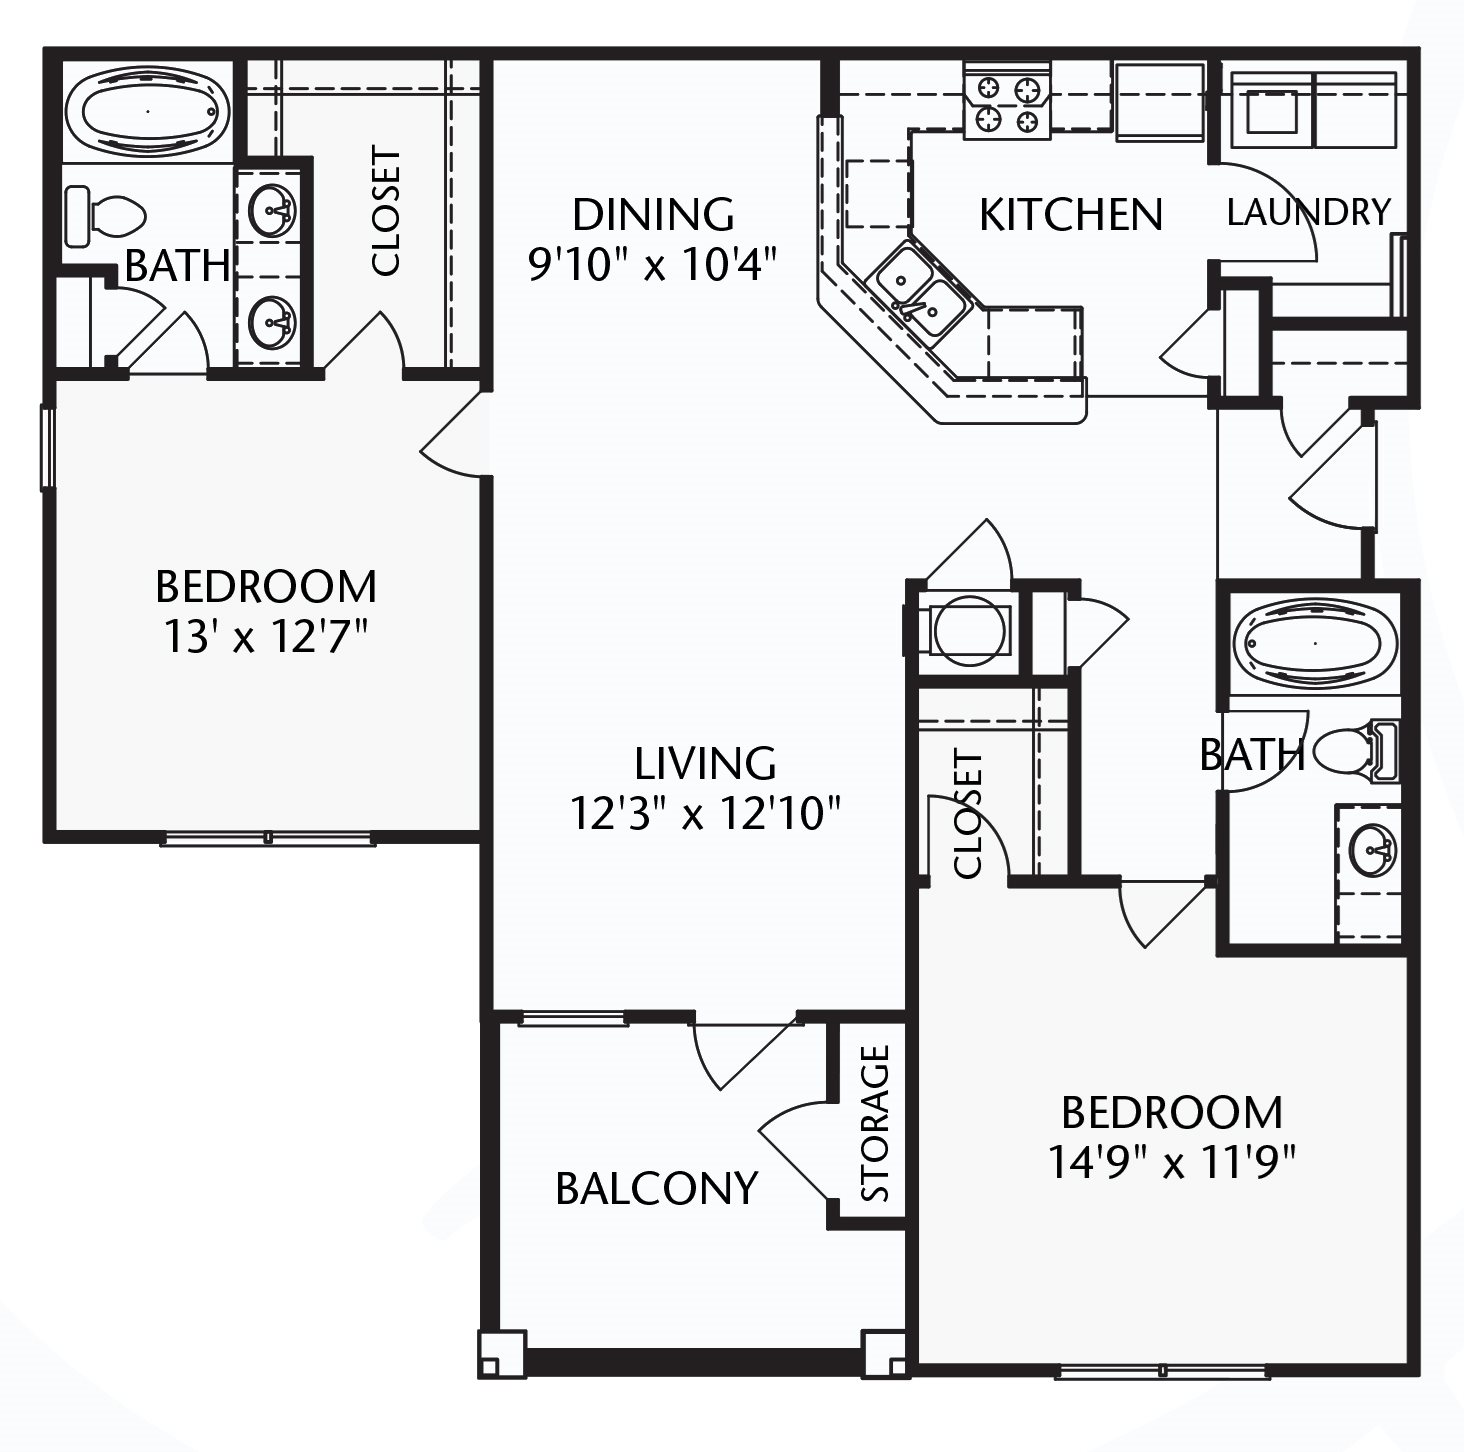 The Heritage (traditional) Floorplan at Ultris Patriot Park